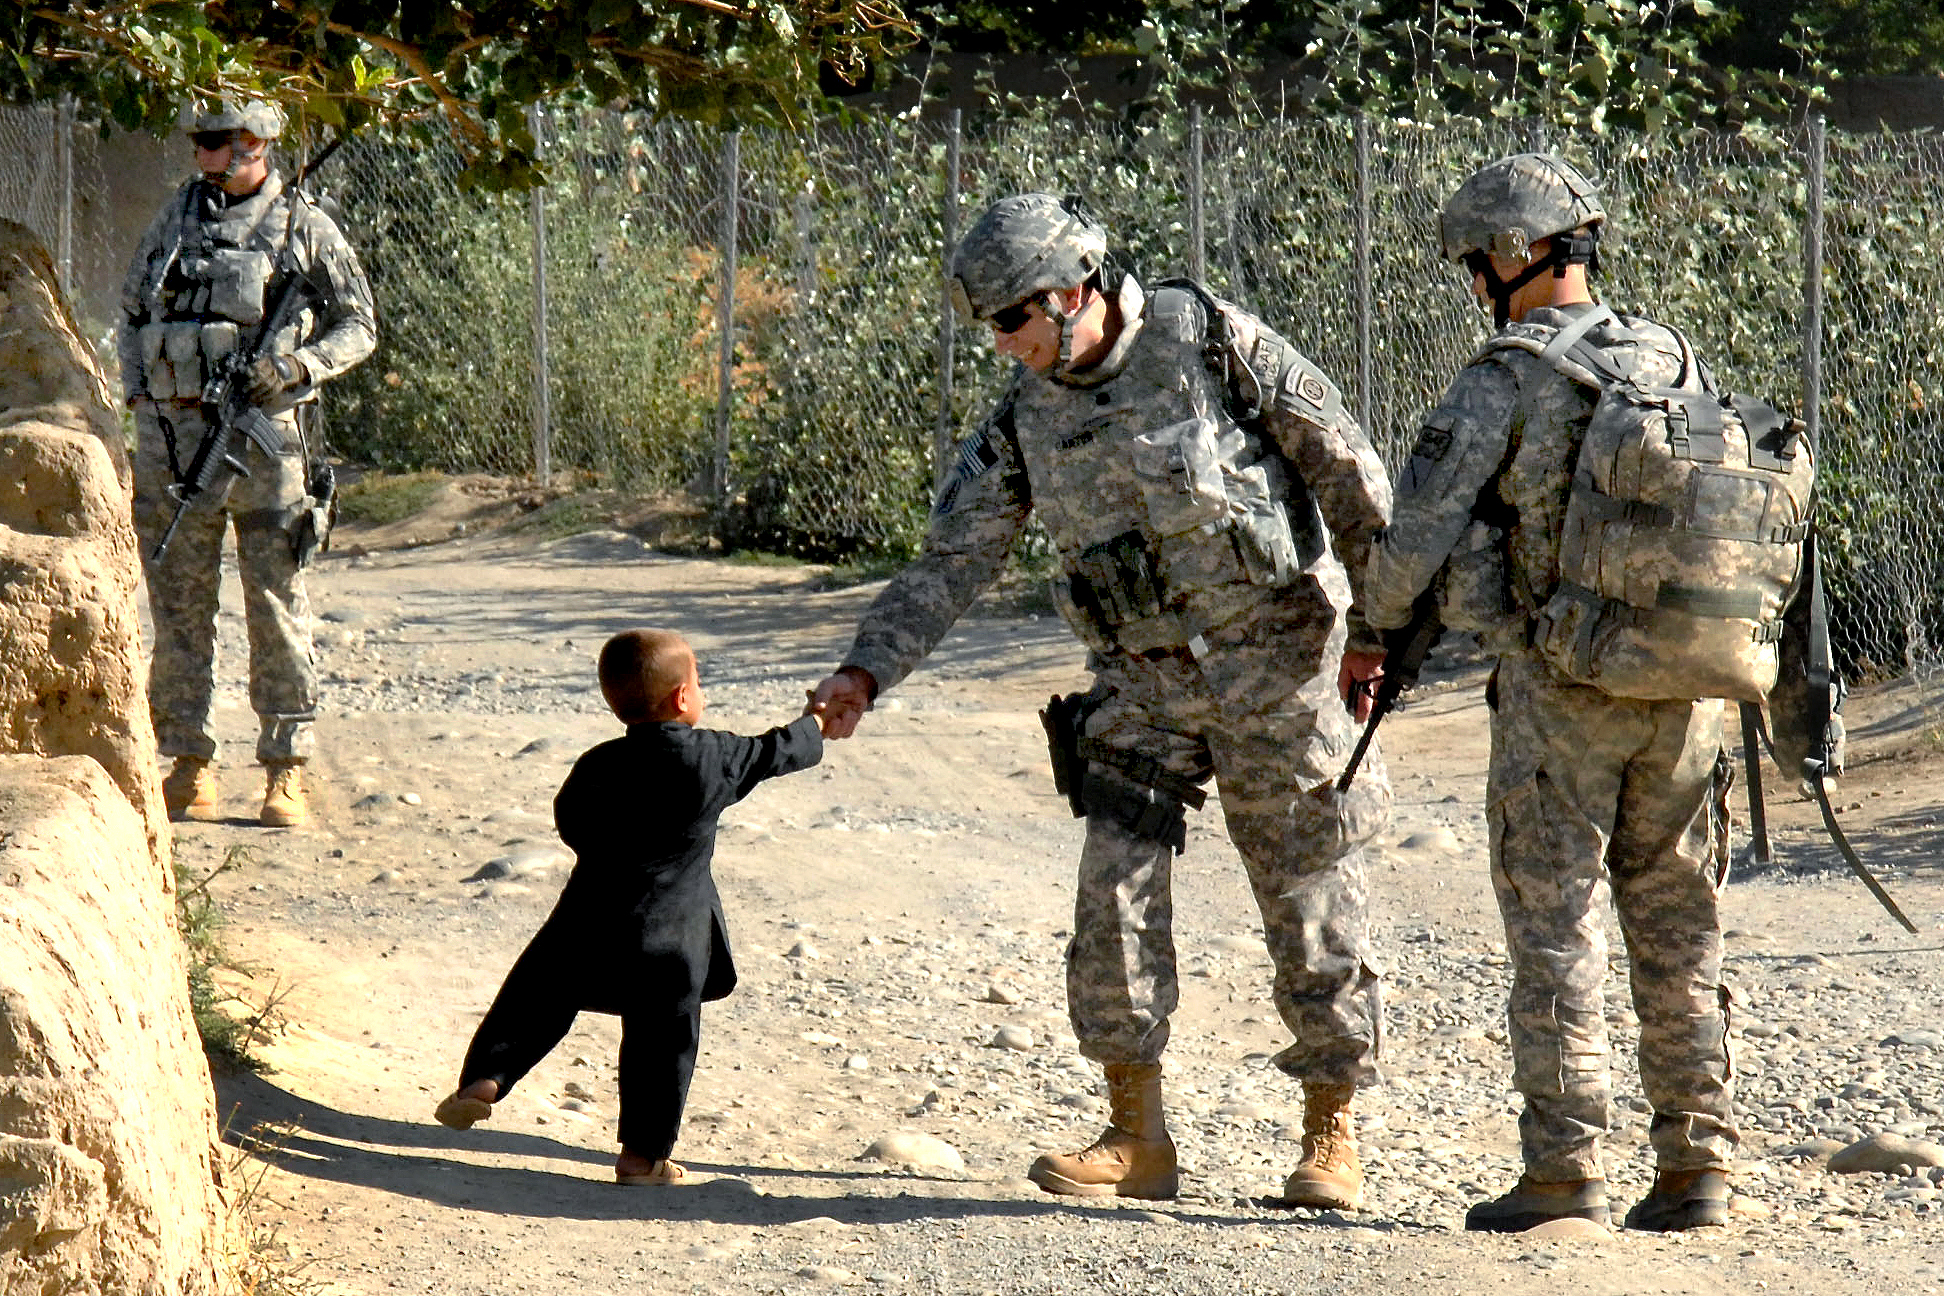 Description flickr - the u.s. army - handshakes in afghanistan